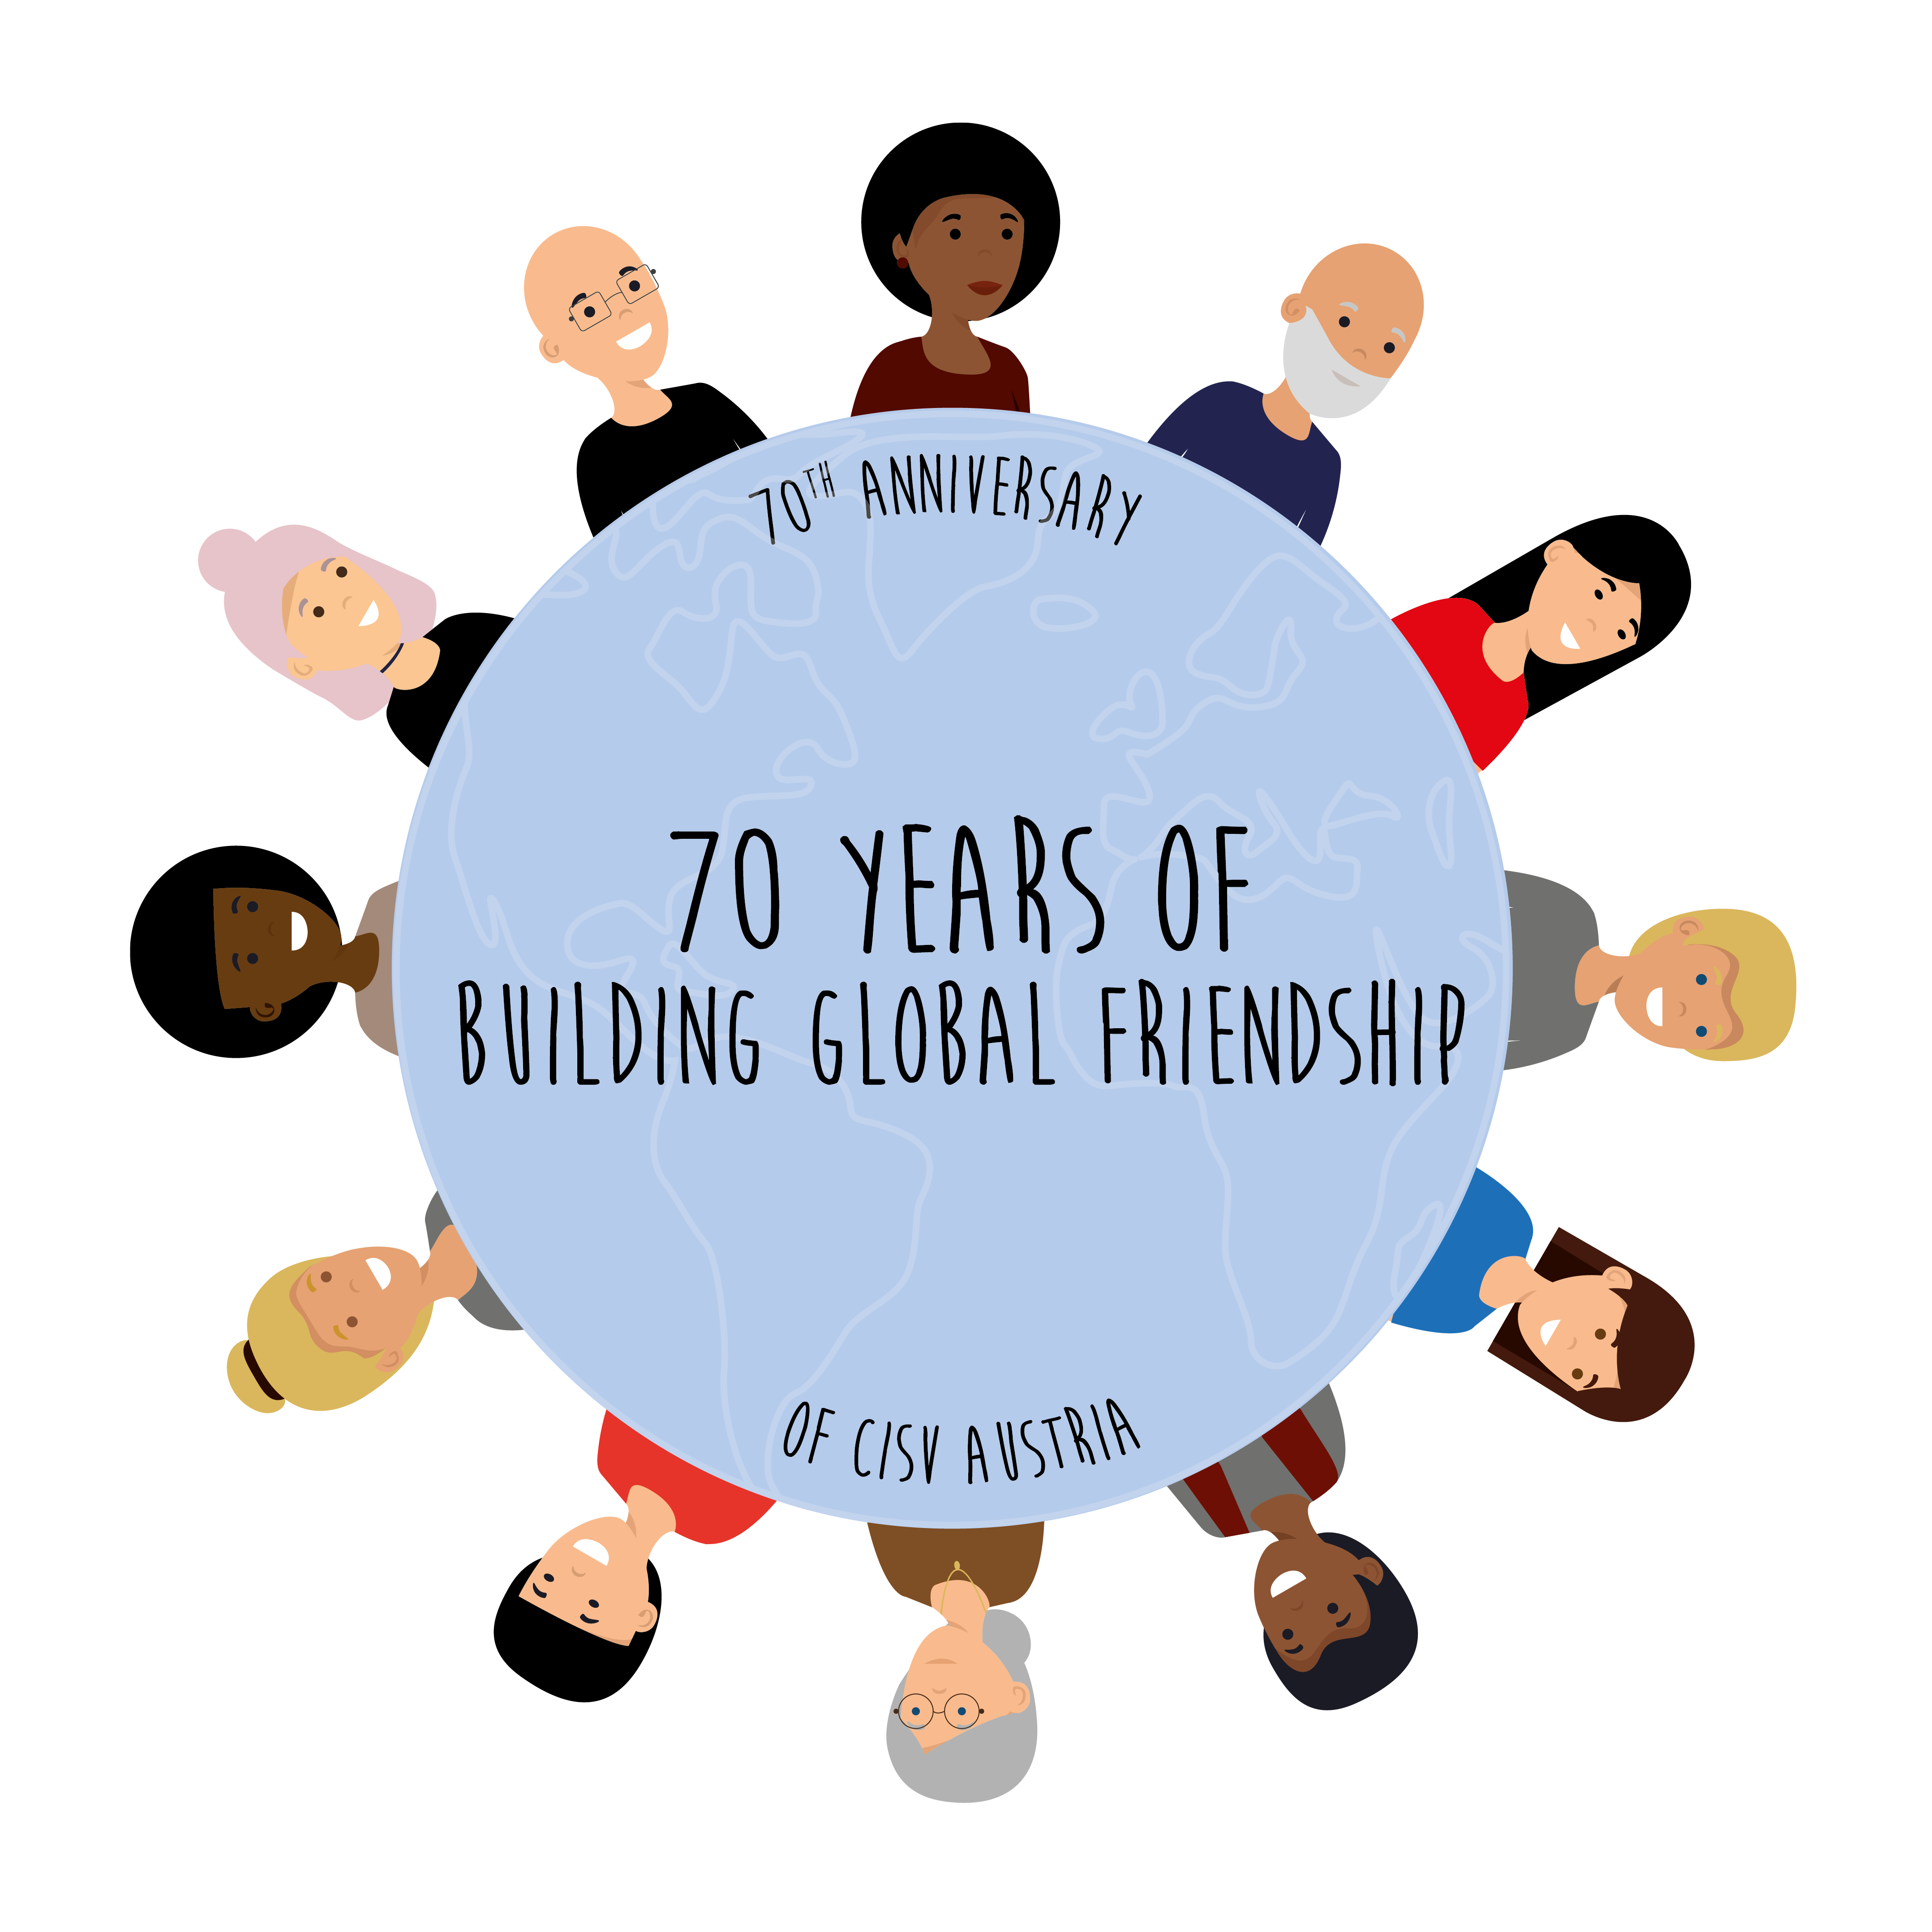 70 Years of Building Global Friendship